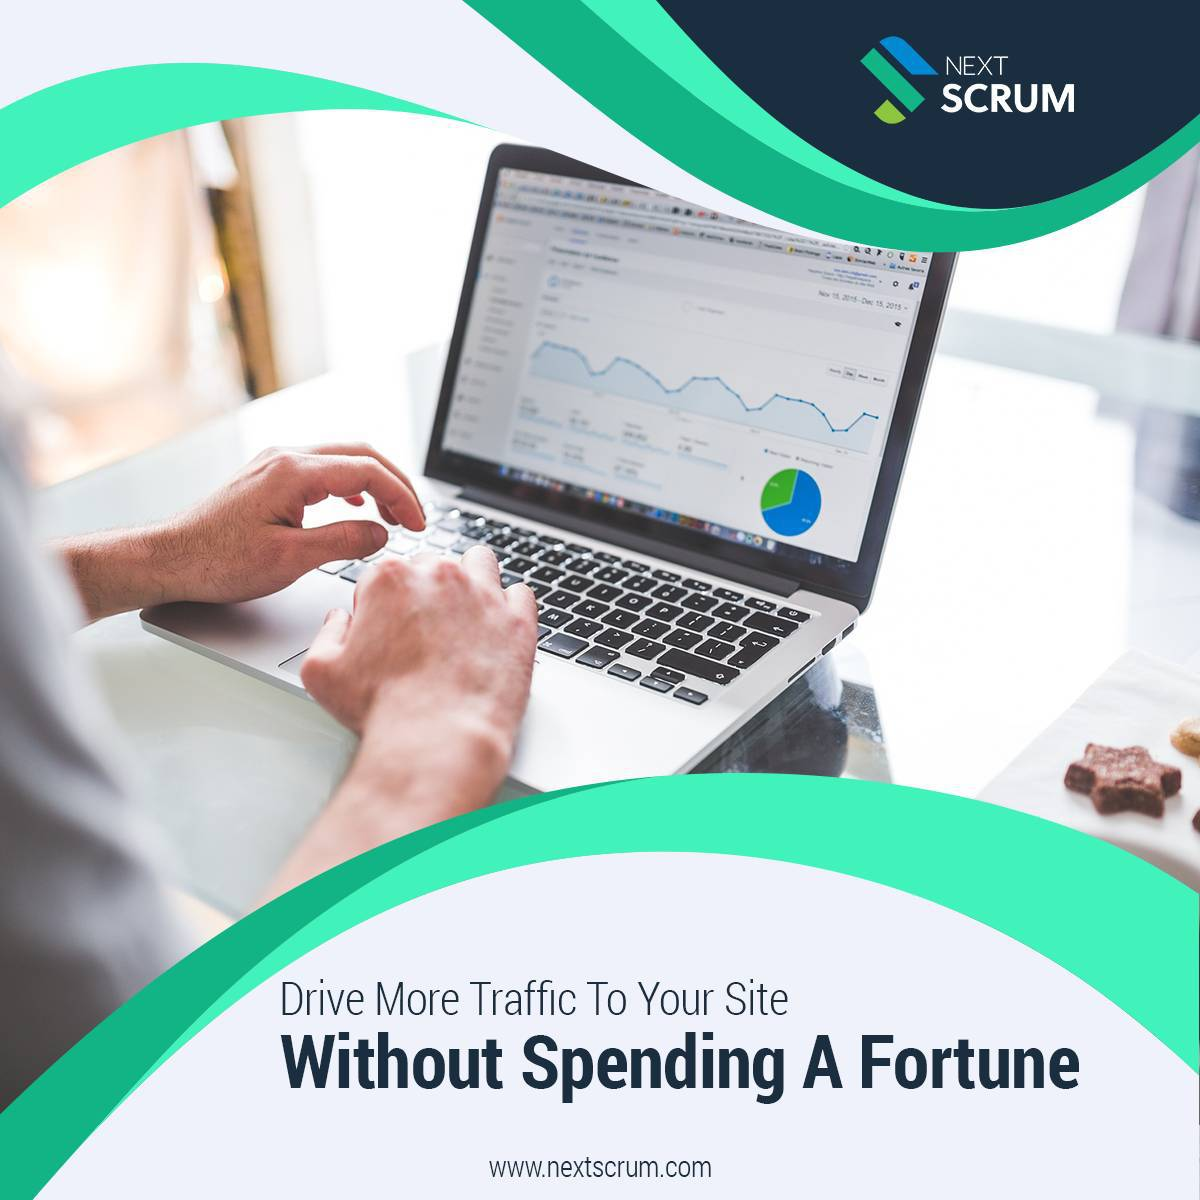 Drive More Traffic To Your Site without Spending A Fortune